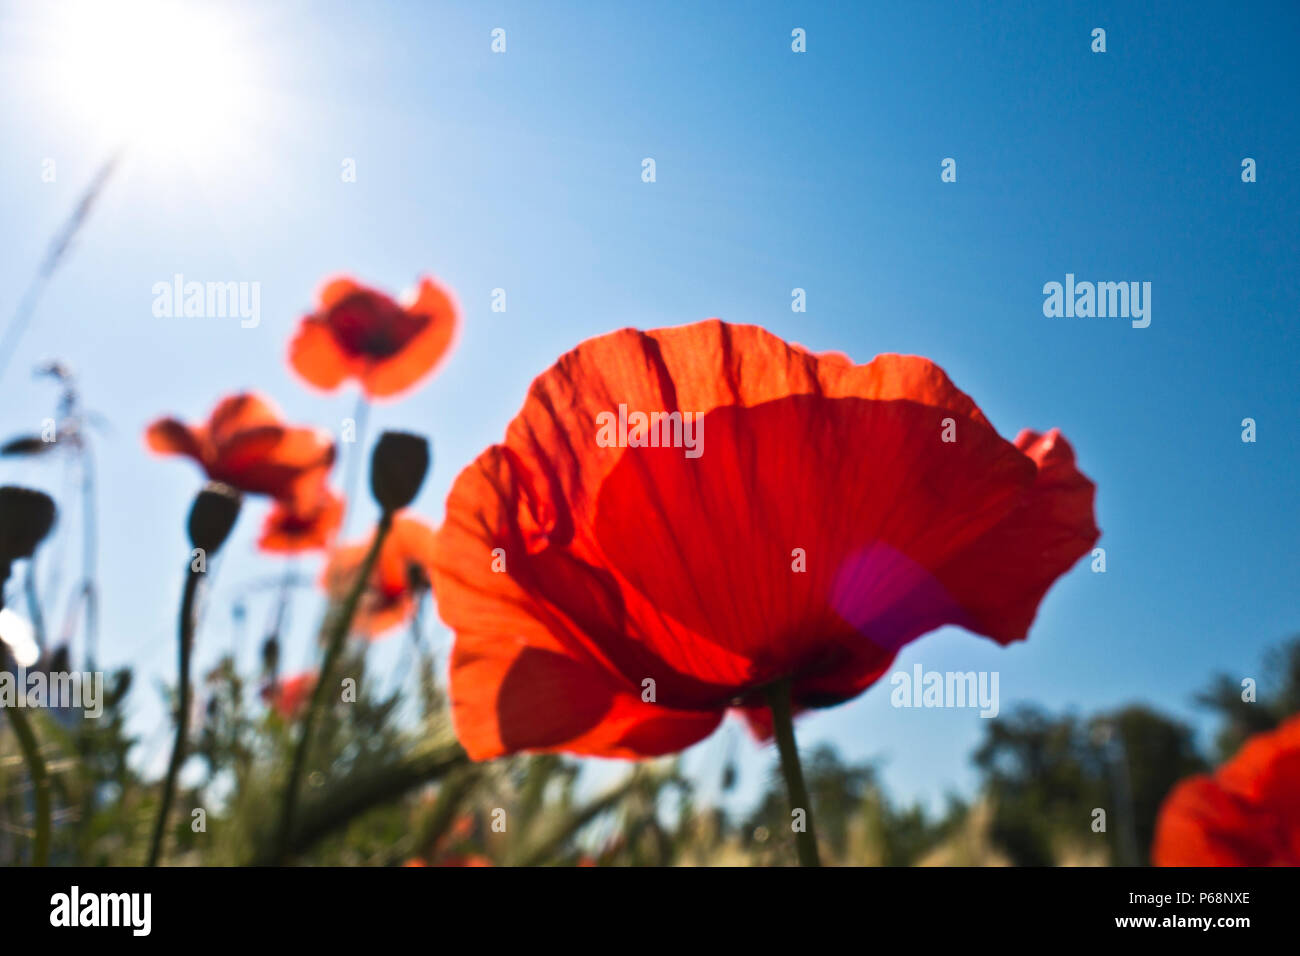 red poppies flowers viewed from below in a sunny summer day - Stock Image